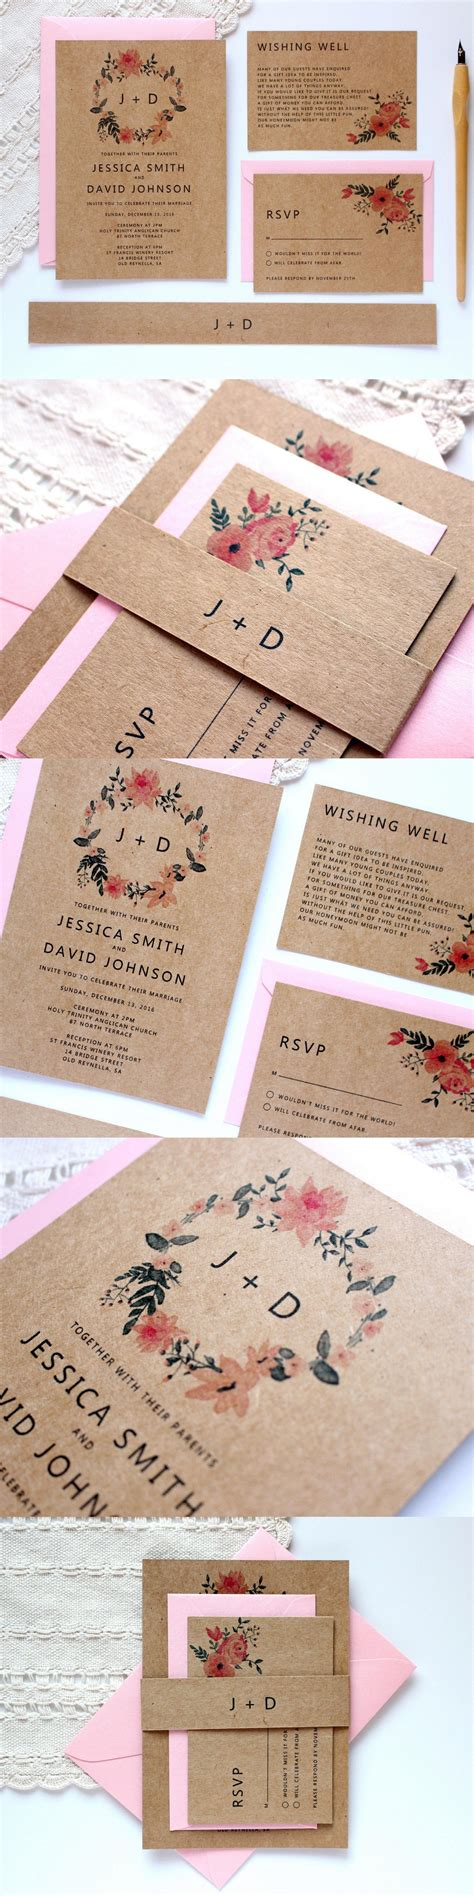 kraft wedding invitation with pink floral wreath by paper